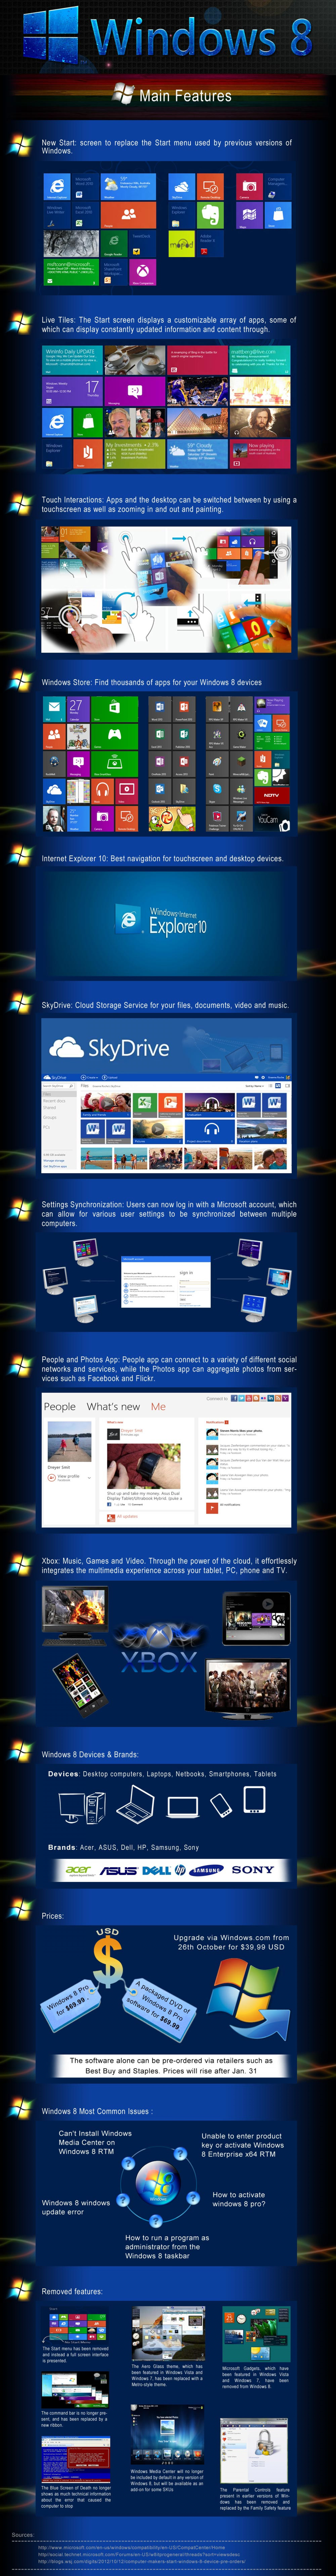 Windows 8- Main Features Infographic